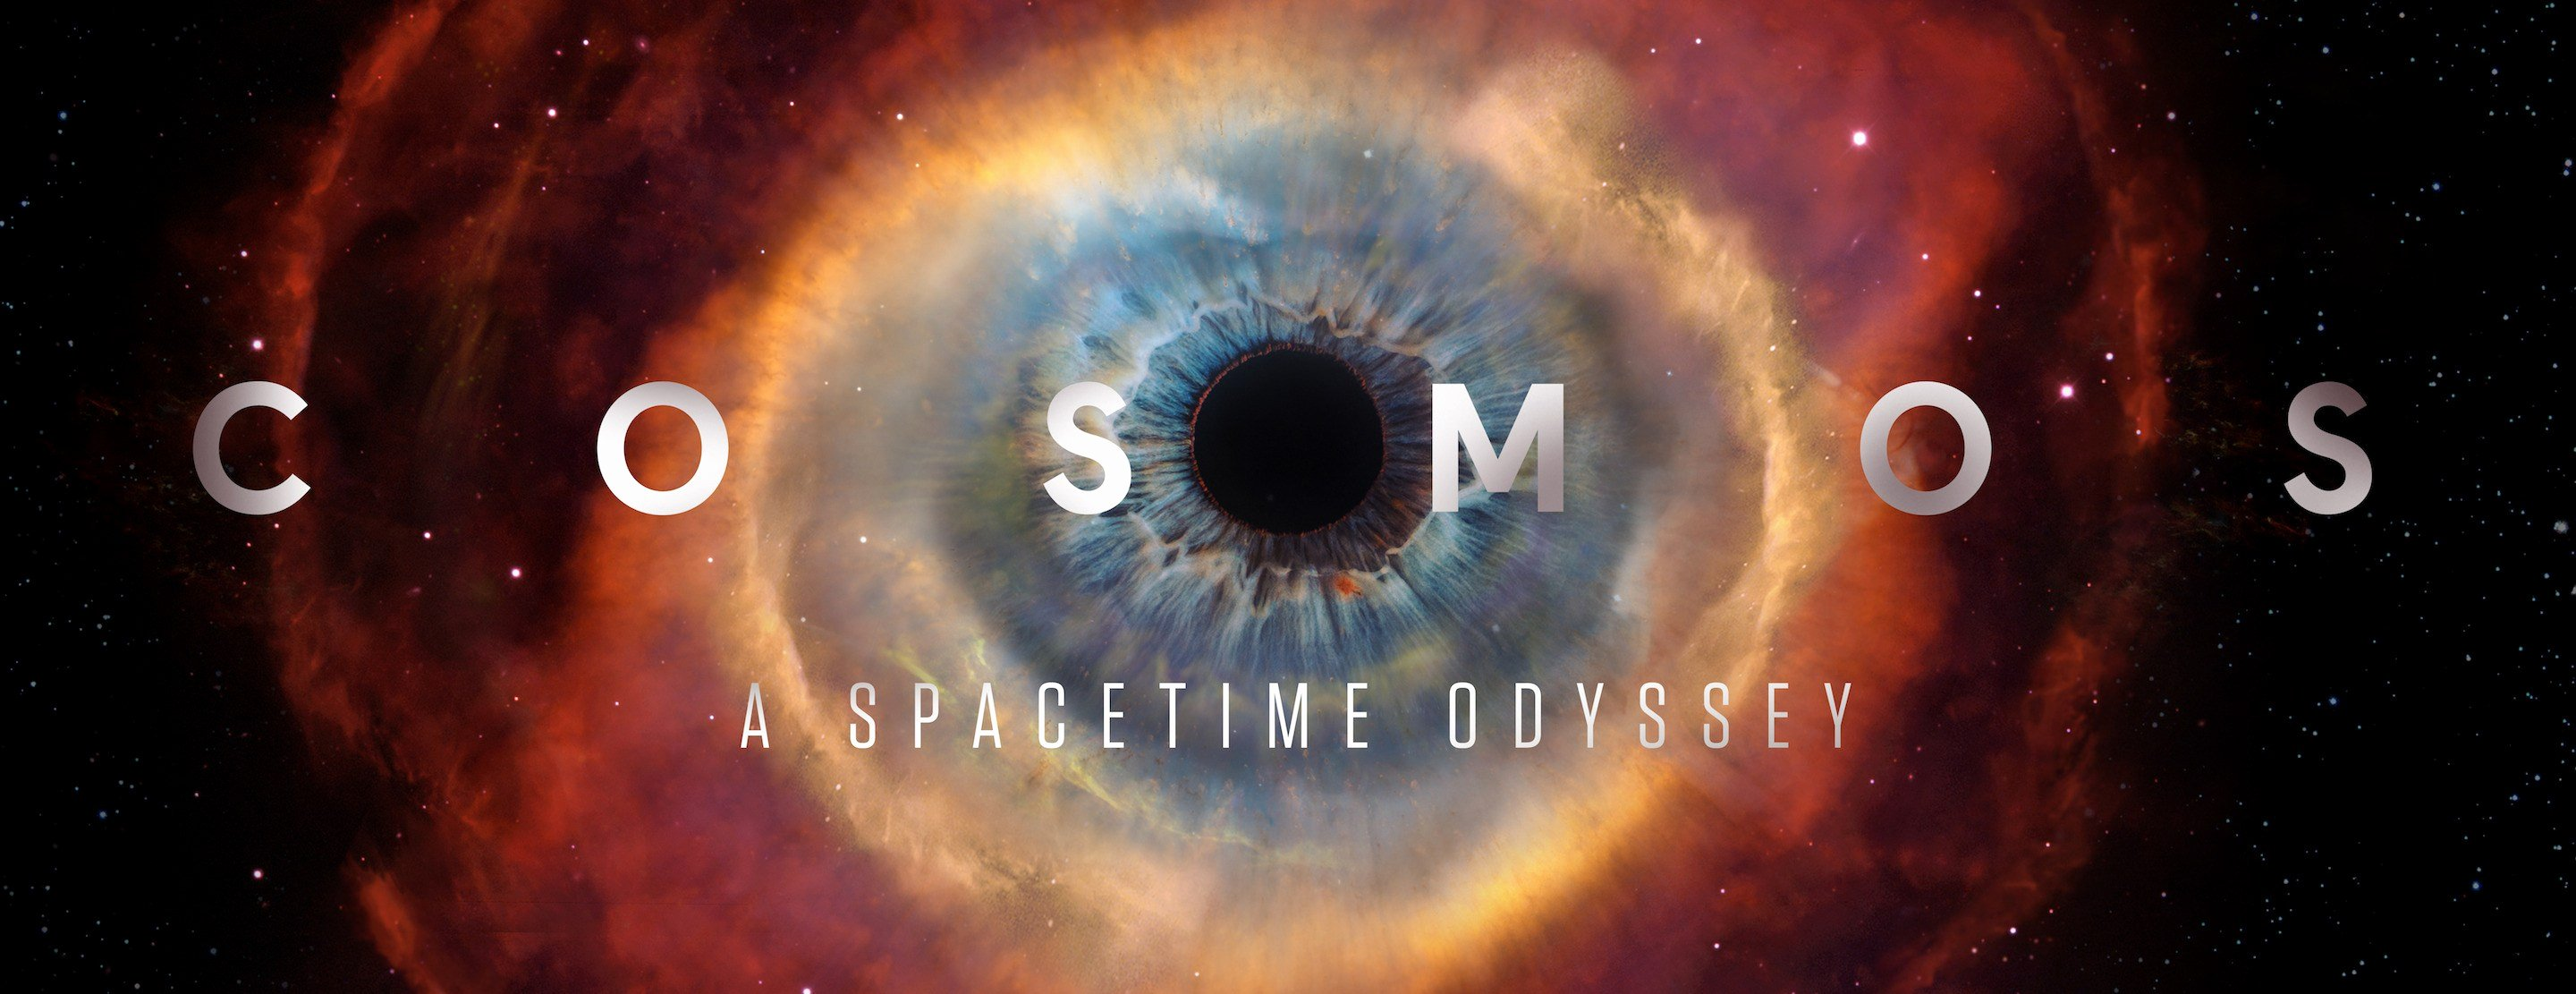 Cosmos Episode 1 Worksheet Answers New Taking A First Look at Cosmos A Spacetime Odyssey